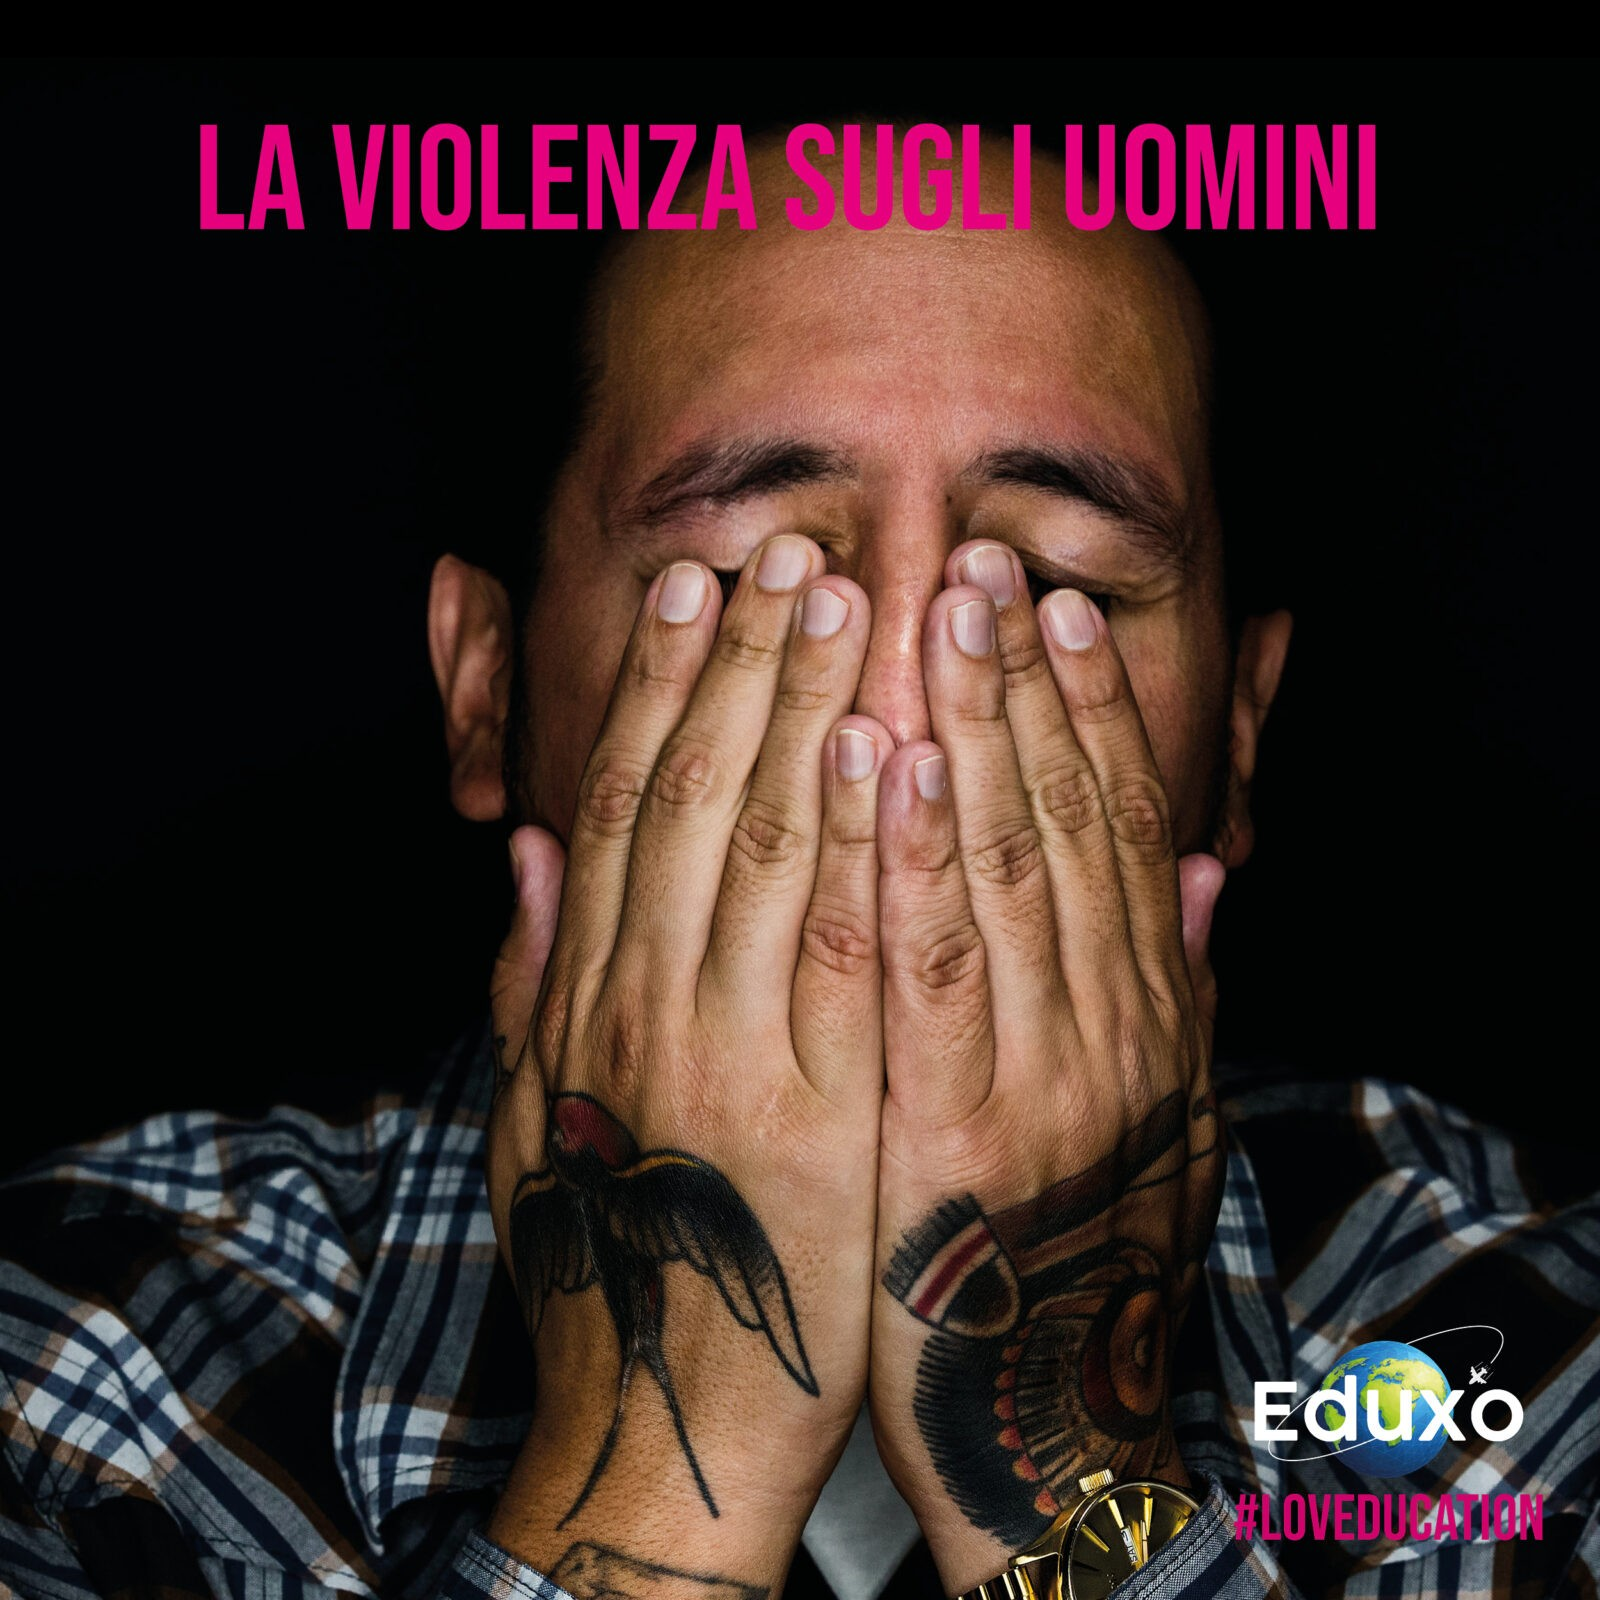 You are currently viewing Violenza sugli uomini